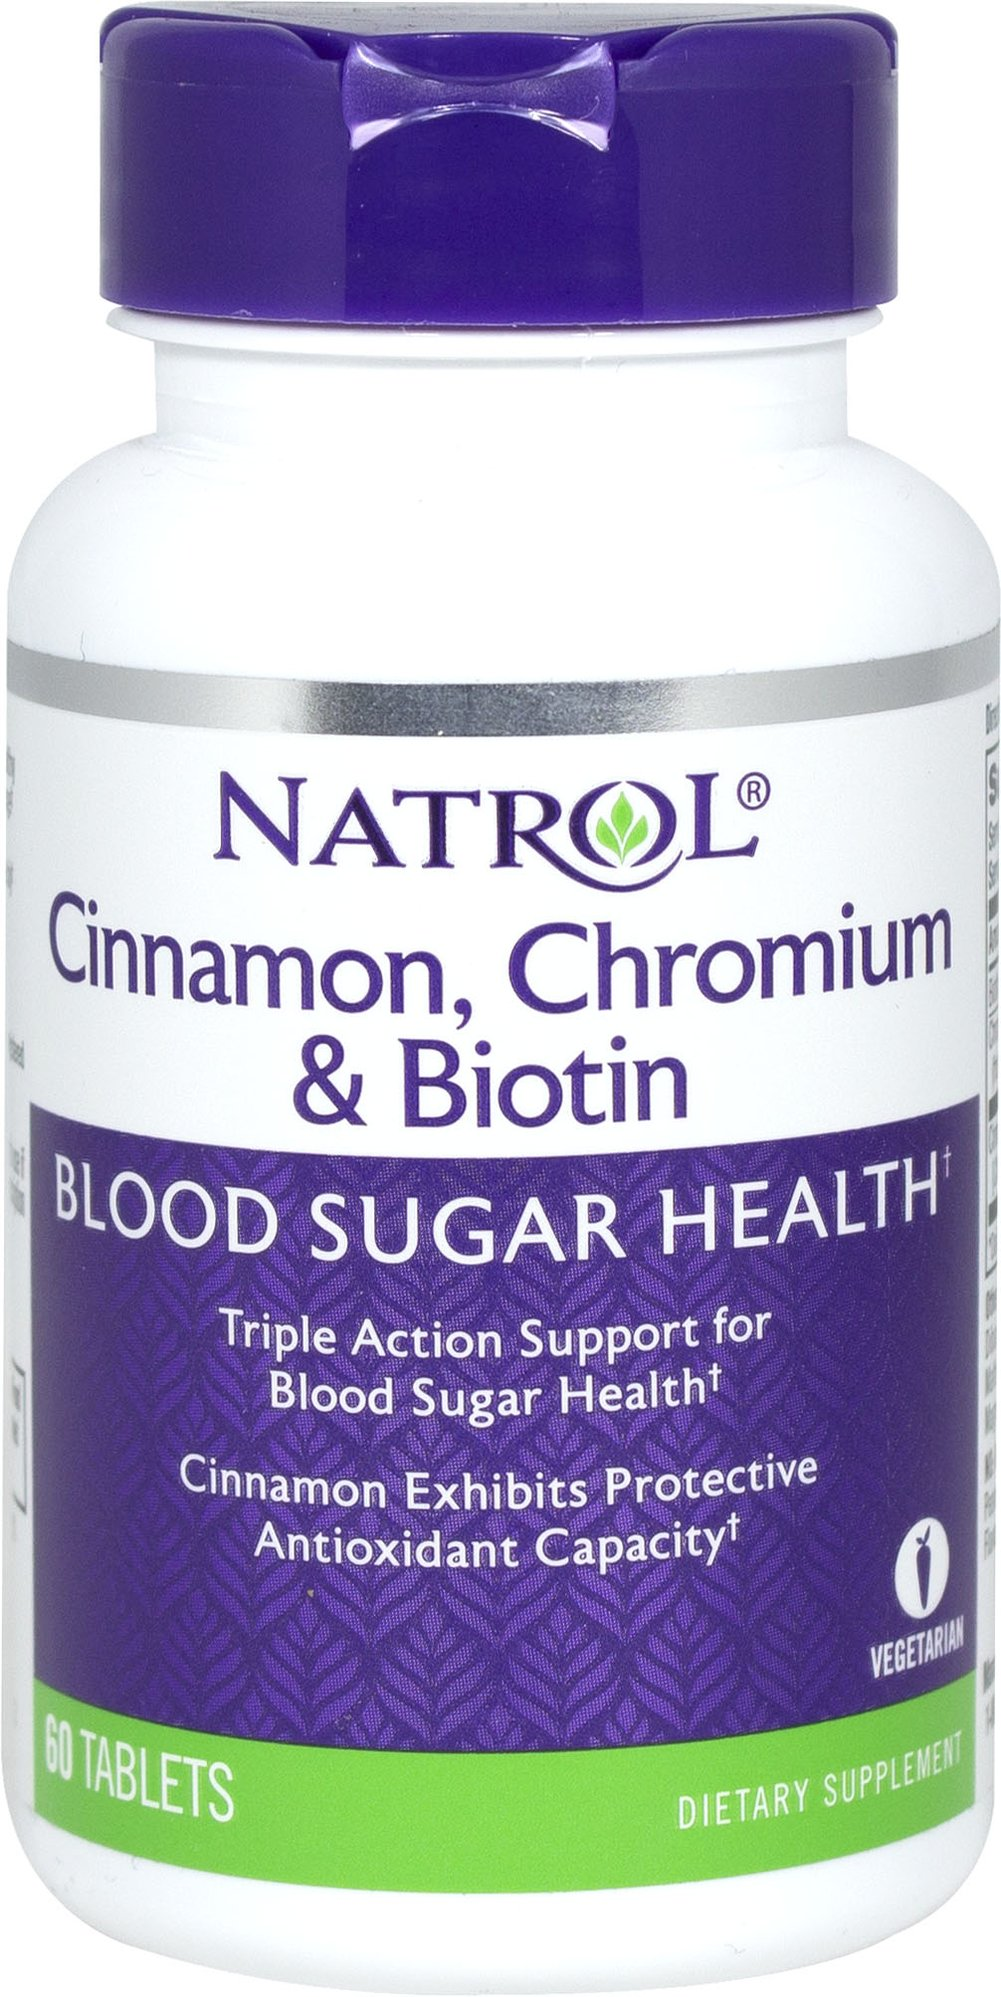 Super Cinnamon Complex with Chromium & Biotin <p><strong>From the Manufacturer's Label:</strong></p><p>Natrol Cinnamon Biotin Chromium provides a powerful, triple action formula of Cinnamon, Biotin, and Chromium Picolinate to support sugar, protein, and fat metabolism and help maintain blood sugar levels already within the normal range.<strong></strong></p> 60 Tablets  $11.99